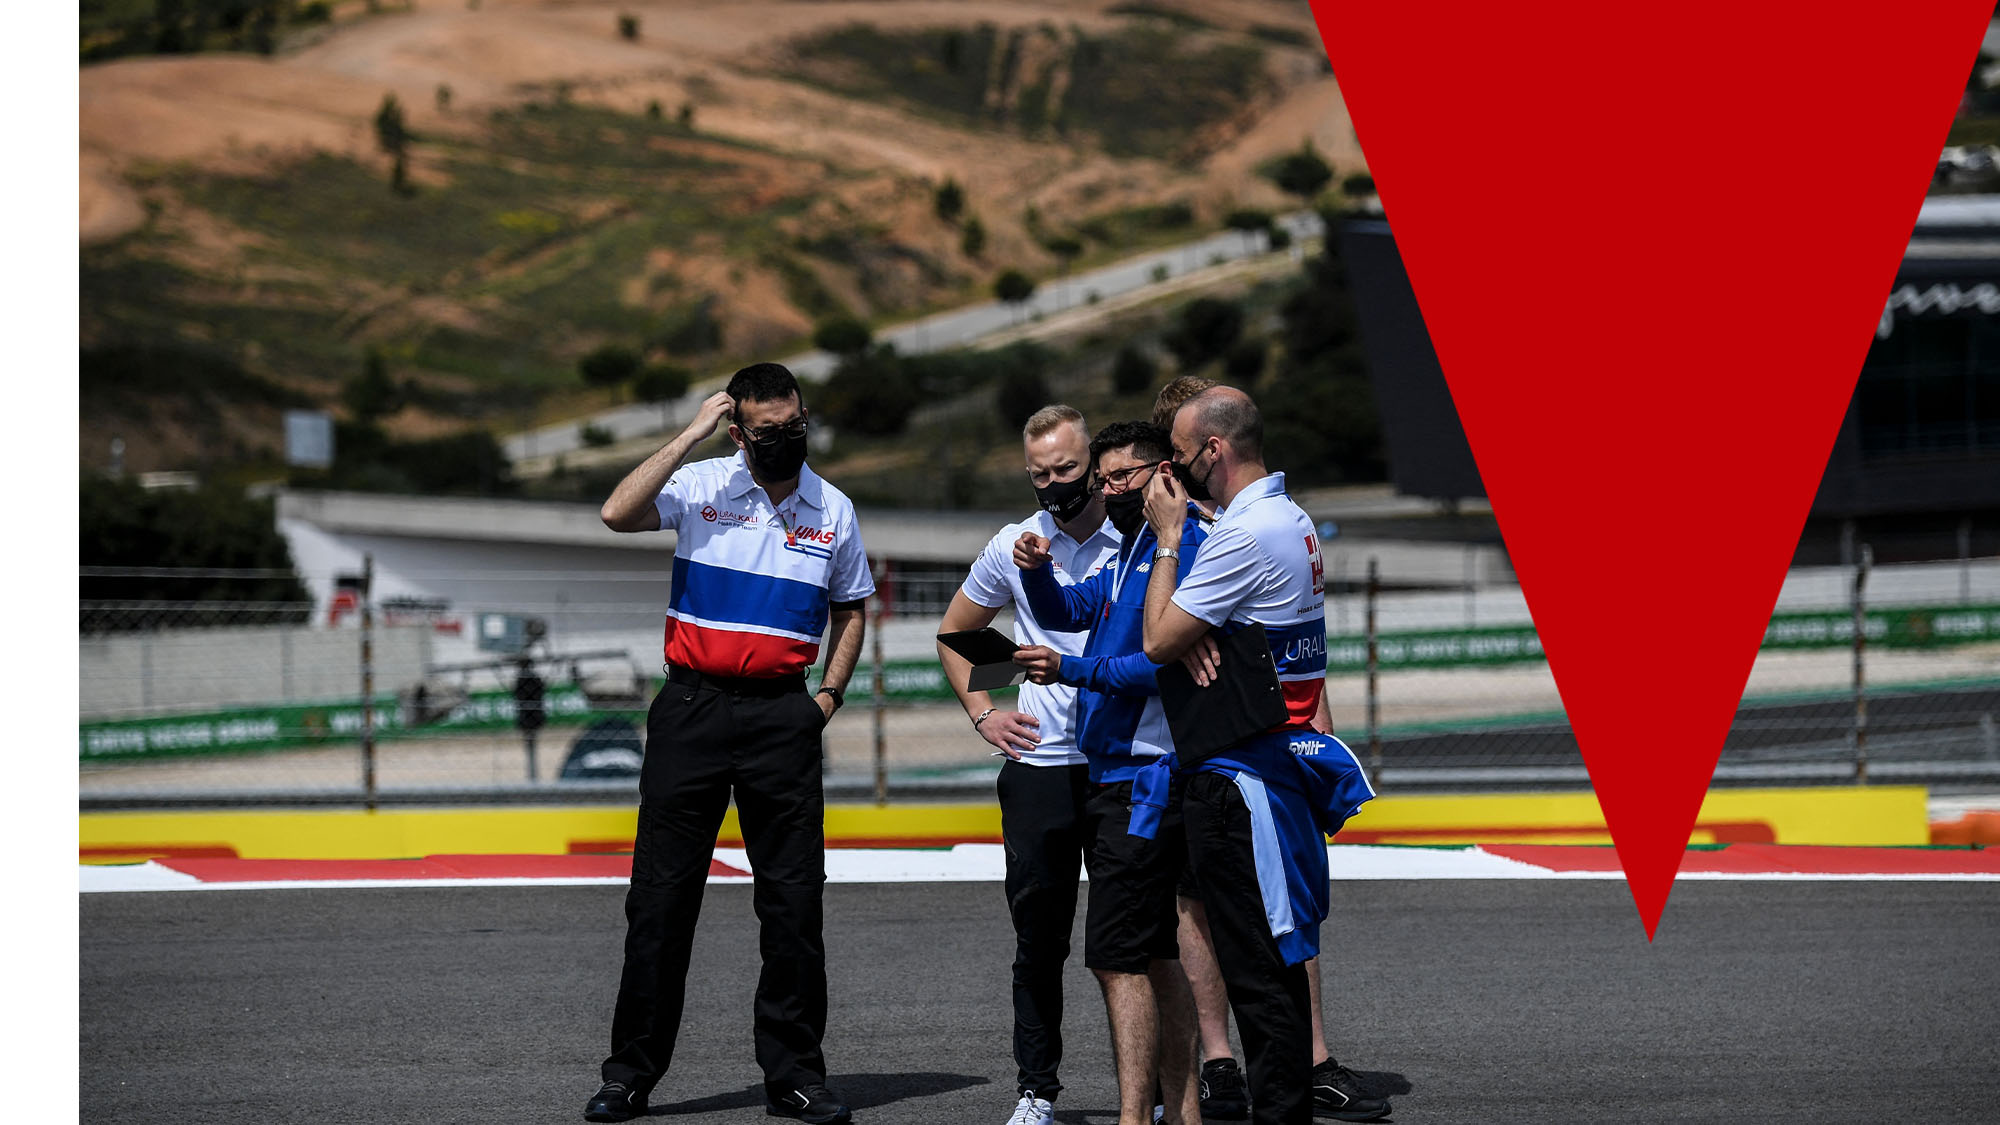 Haas F1's Russian driver Nikita Mazepin (2ndL) walks with team members at the Algarve International Circuit in Portimao on April 29, 2021 ahead of the Portuguese Formula One Grand Prix. (Photo by PATRICIA DE MELO MOREIRA / AFP) (Photo by PATRICIA DE MELO MOREIRA/AFP via Getty Images)